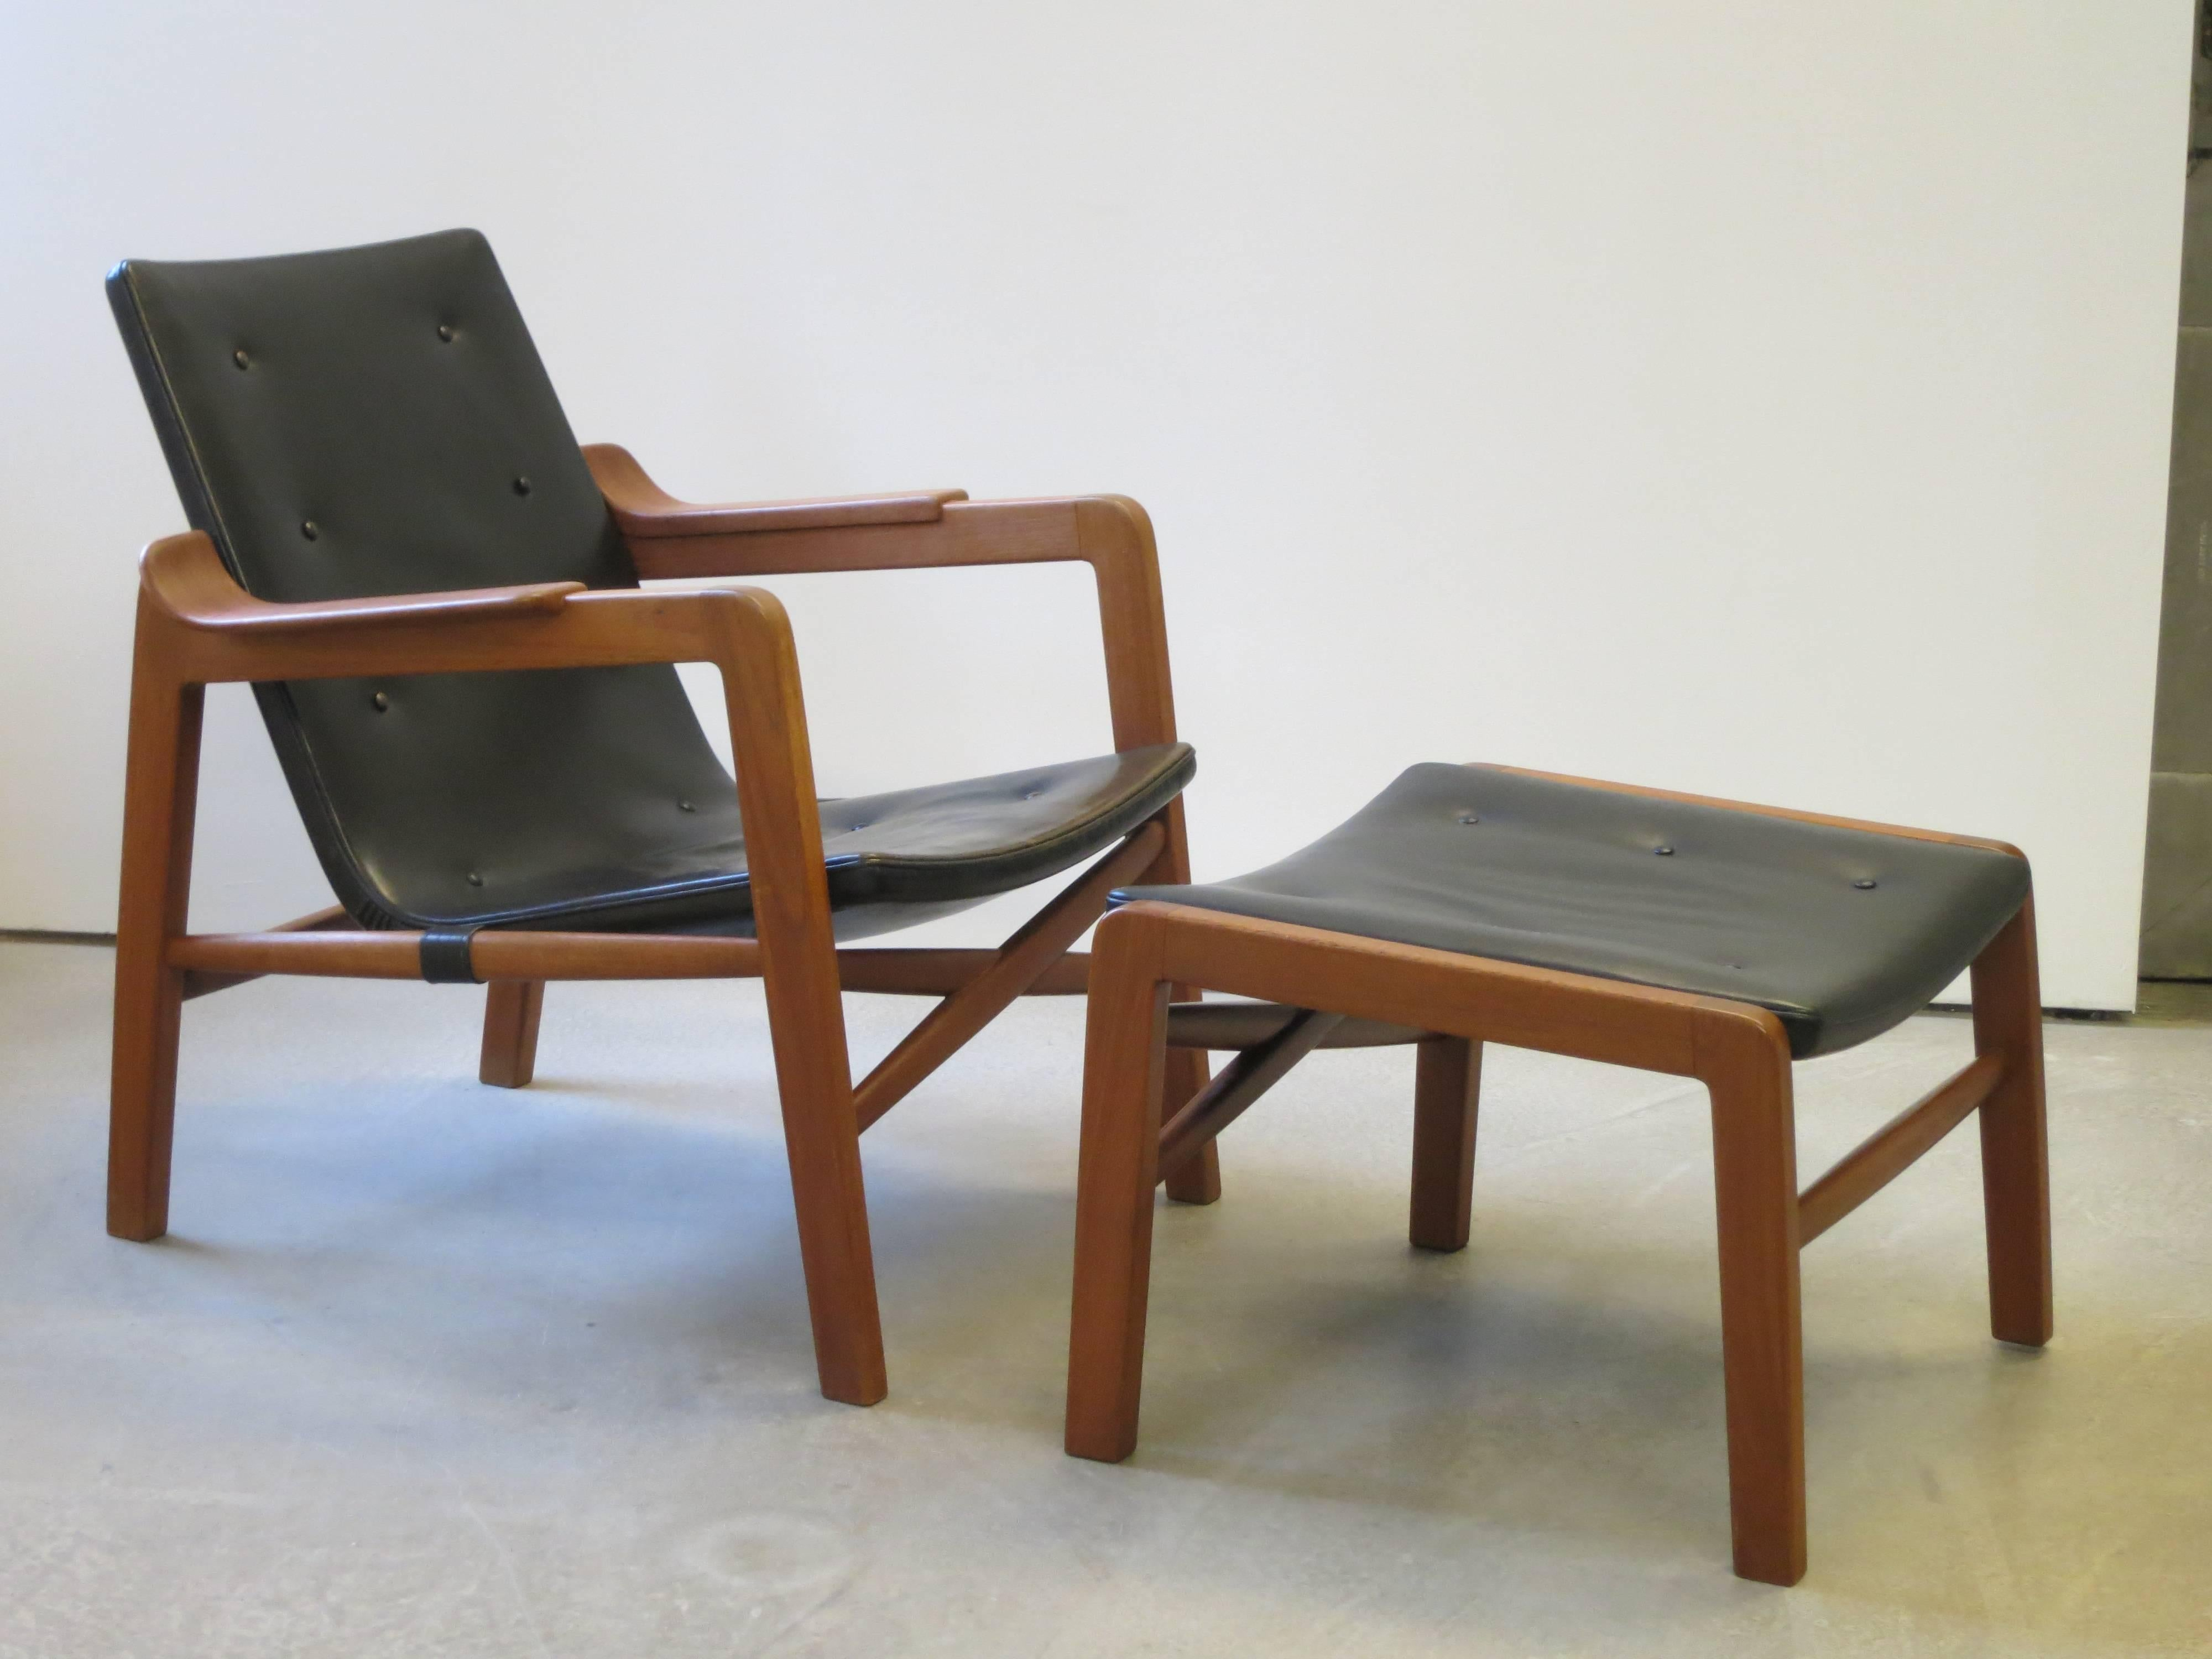 Group Of U201cFireplace Chairsu201d With Footstool By Tove And Edvard Kindt Larsen  For Sale At 1stdibs